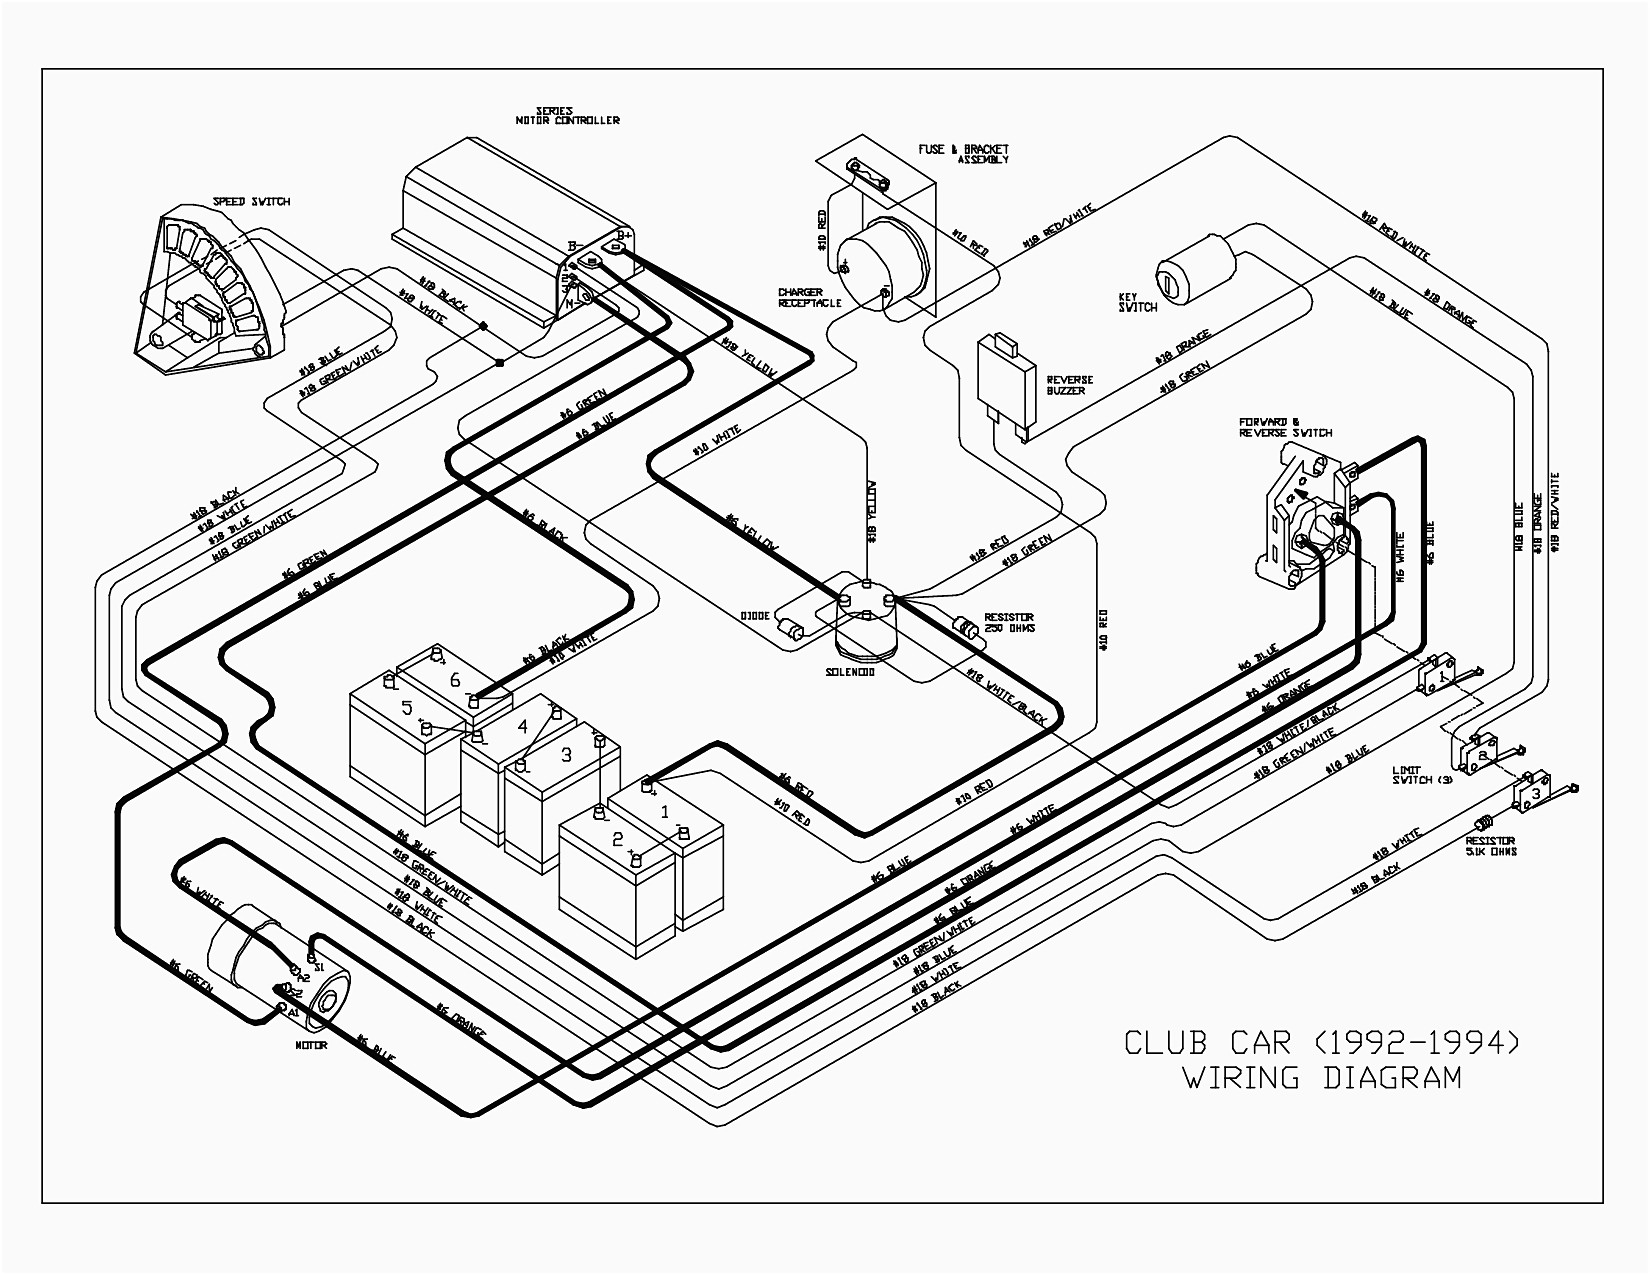 parts manual for club car golf cart